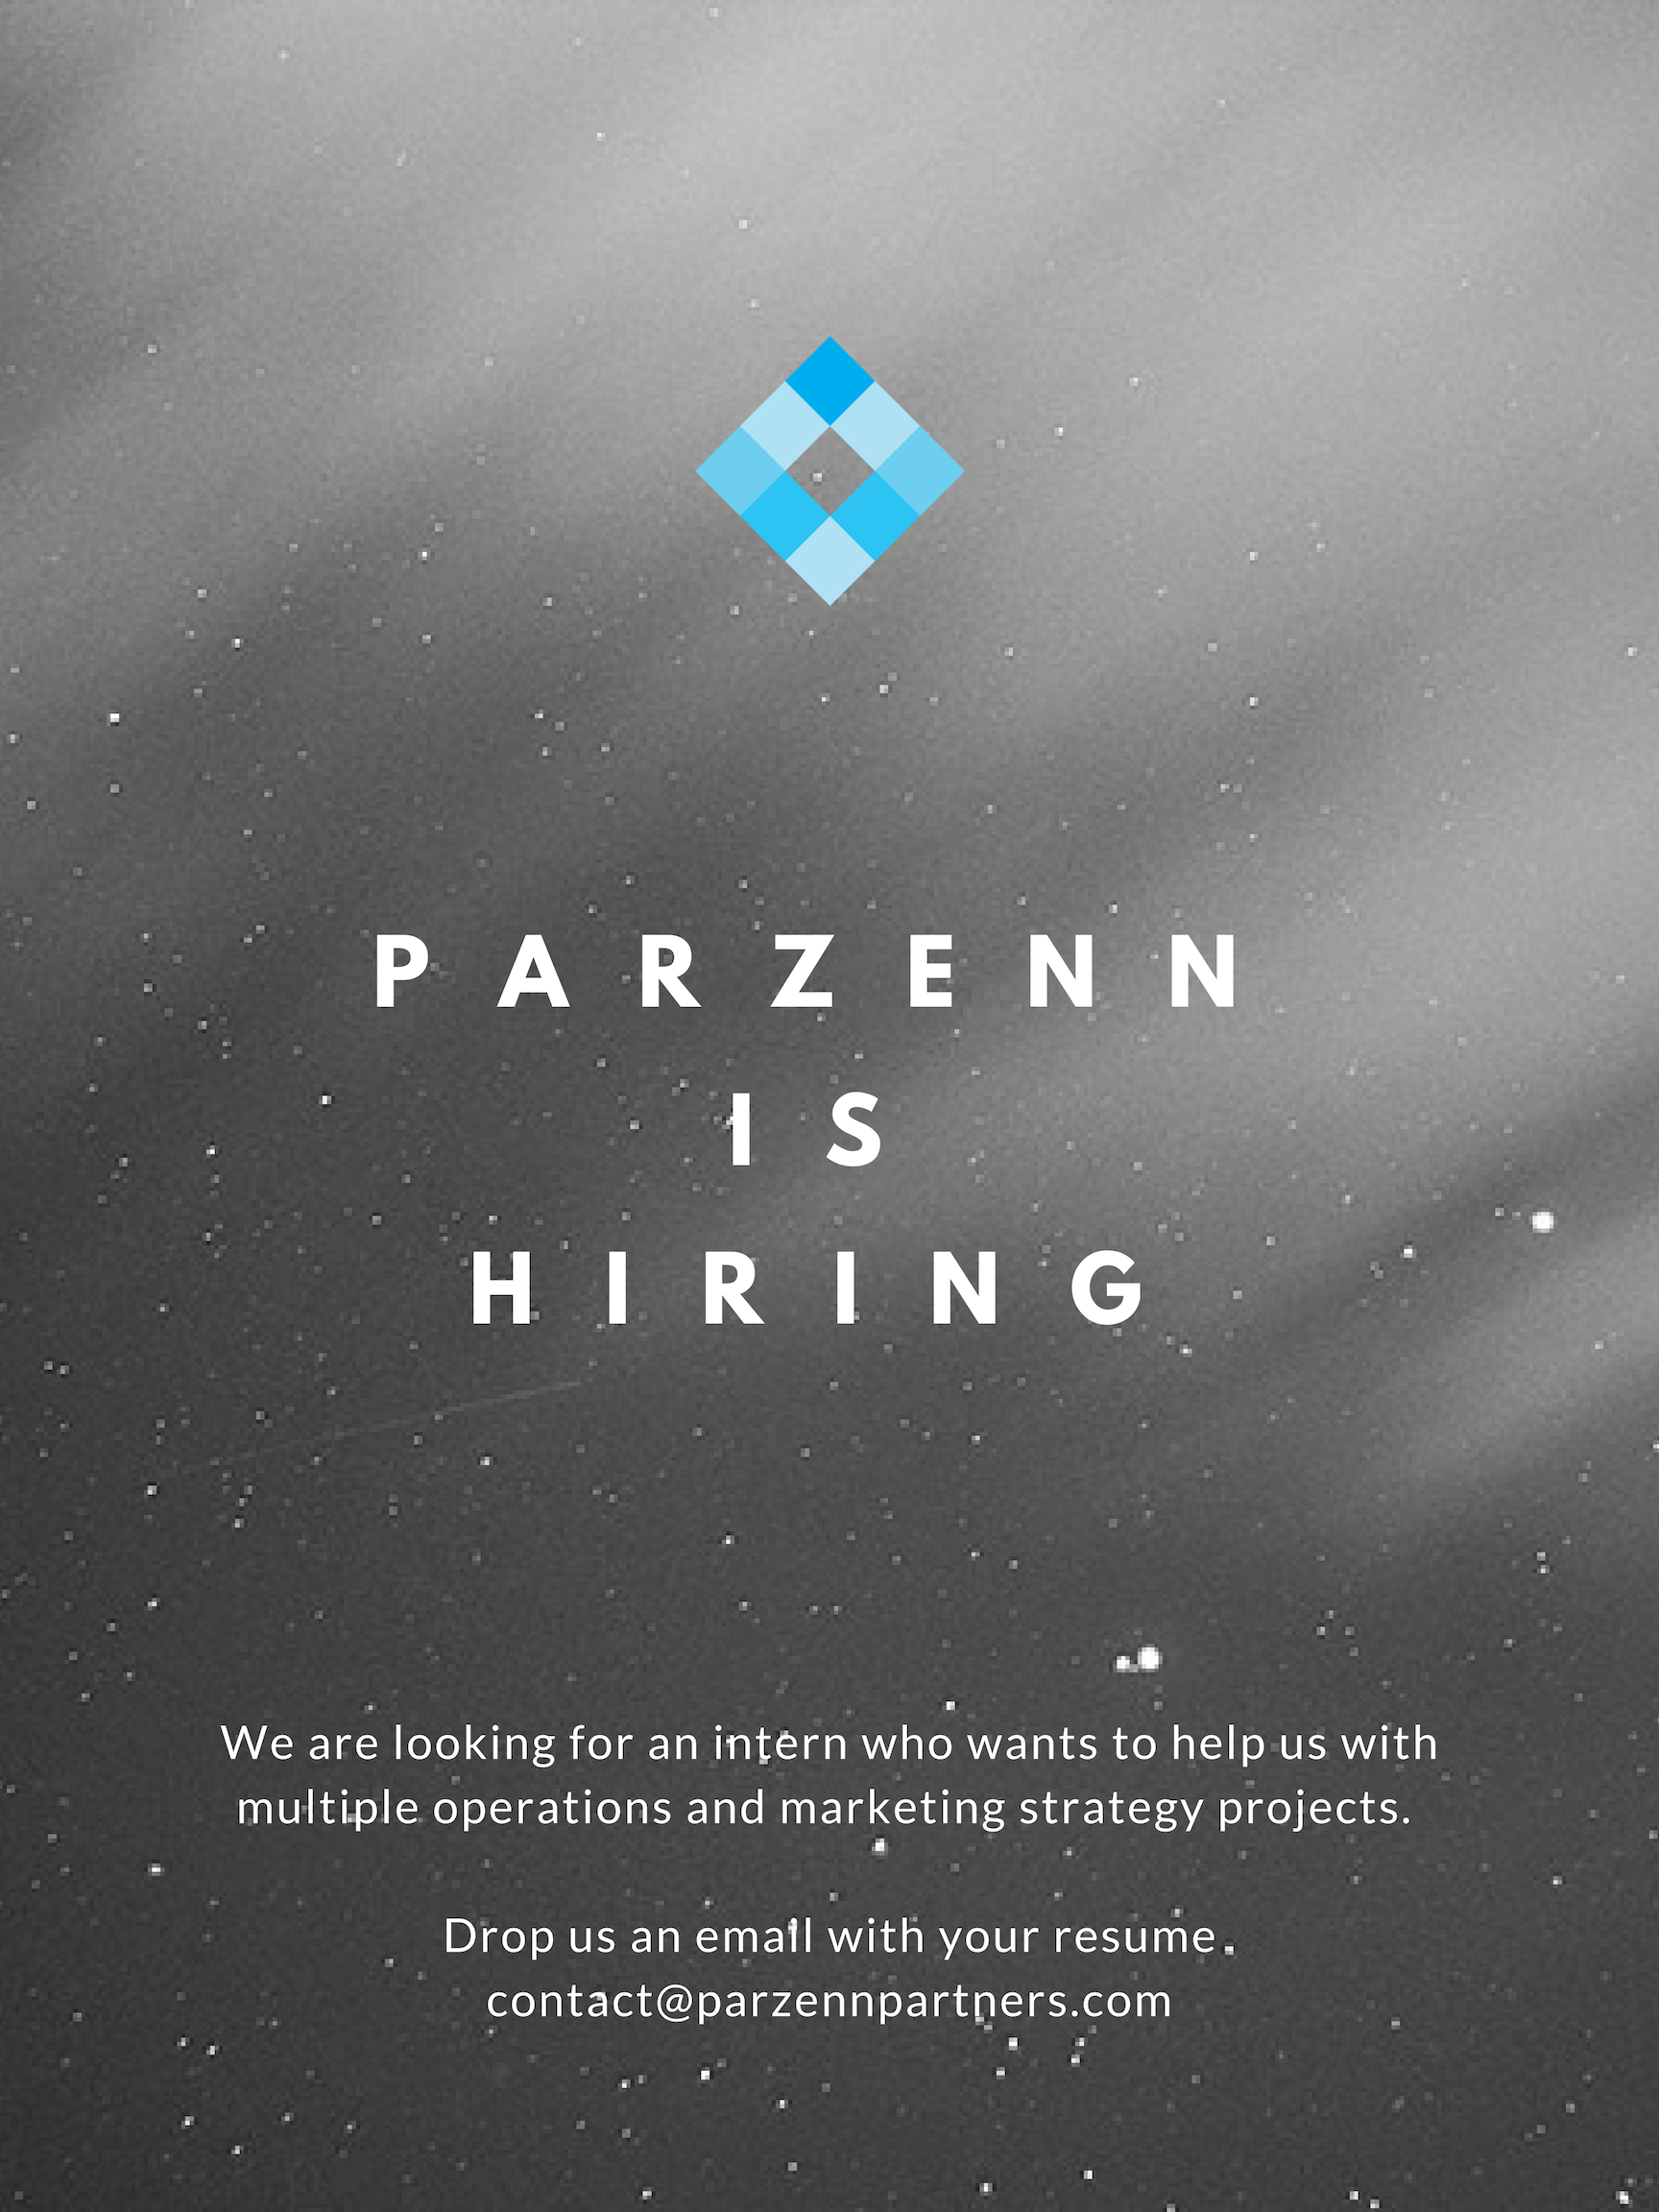 Looking for an exciting career in a fast growing consulting firm with a wide variety of projects ? - Drop us an email with your resume